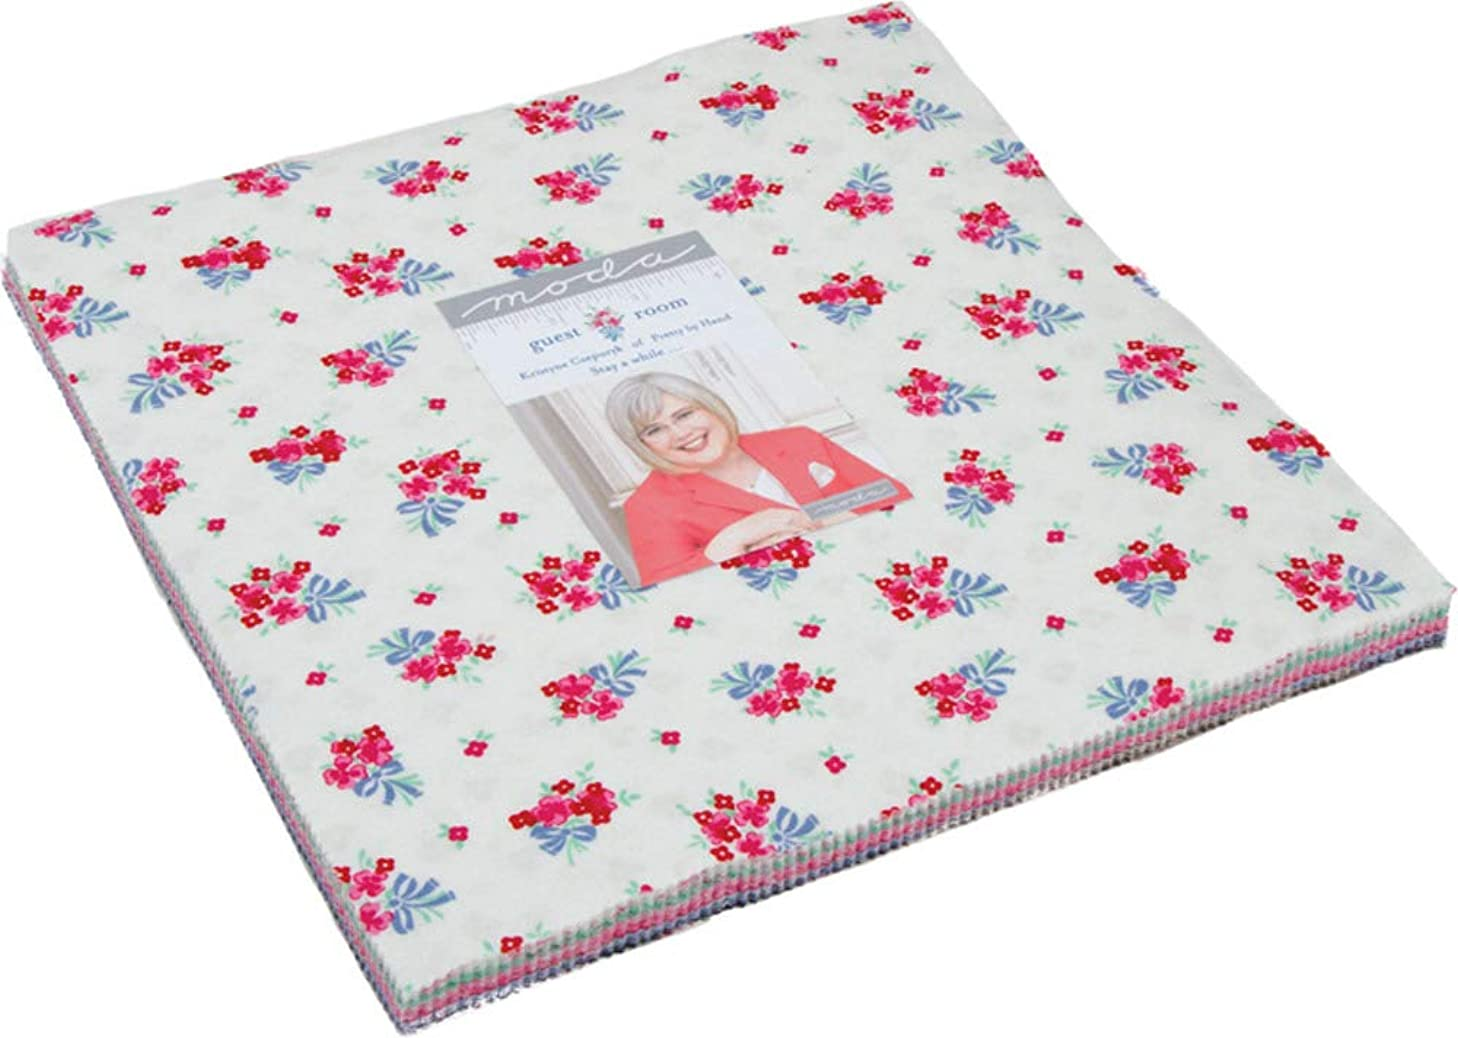 Guest Room Layer Cake, 42-10 inch Precut Fabric Quilt Squares by Kristyne Czepuryk